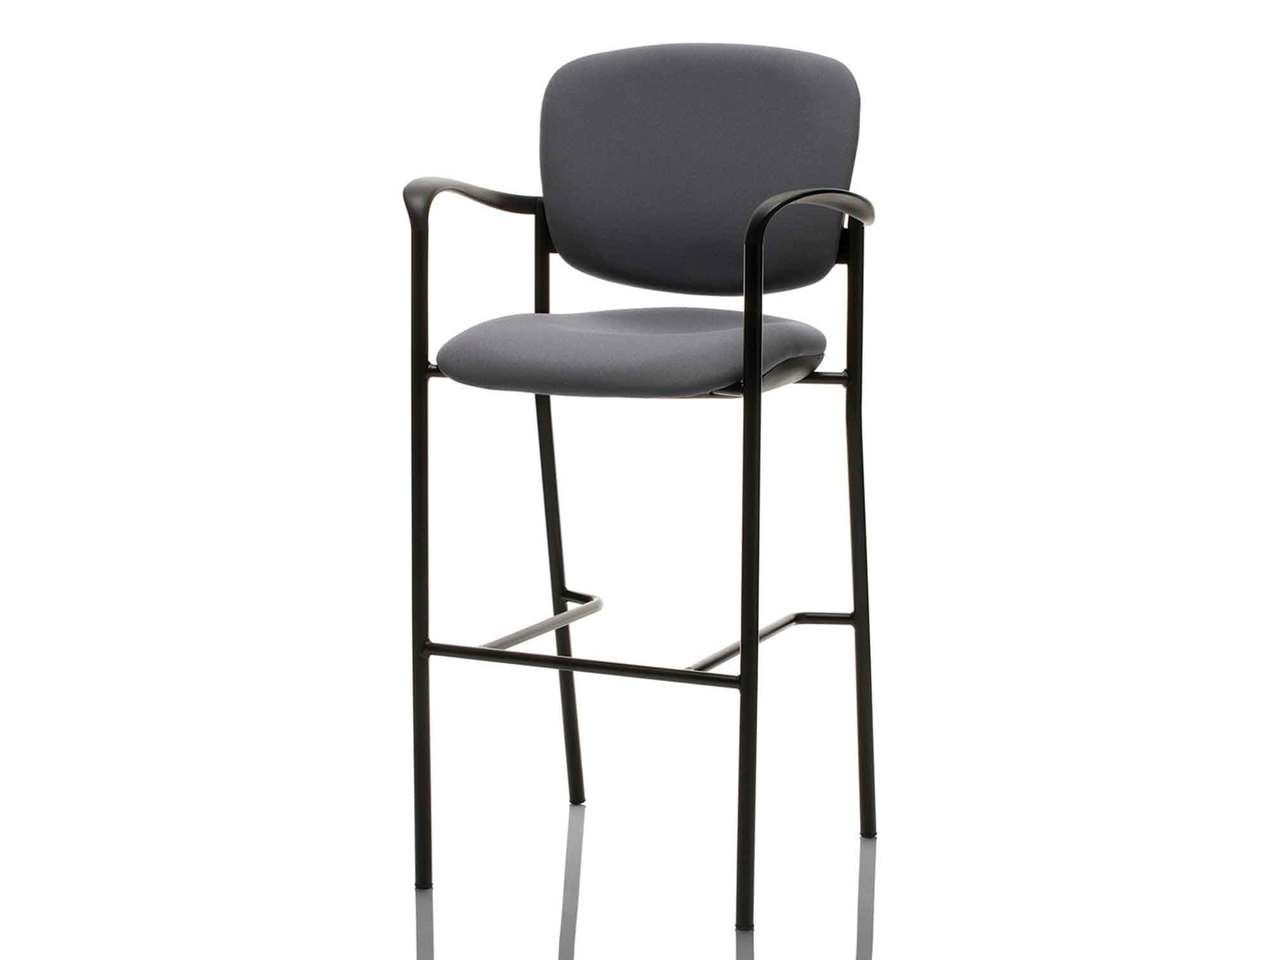 united chair medical stool over tables elderly brylee office furniture warehouse